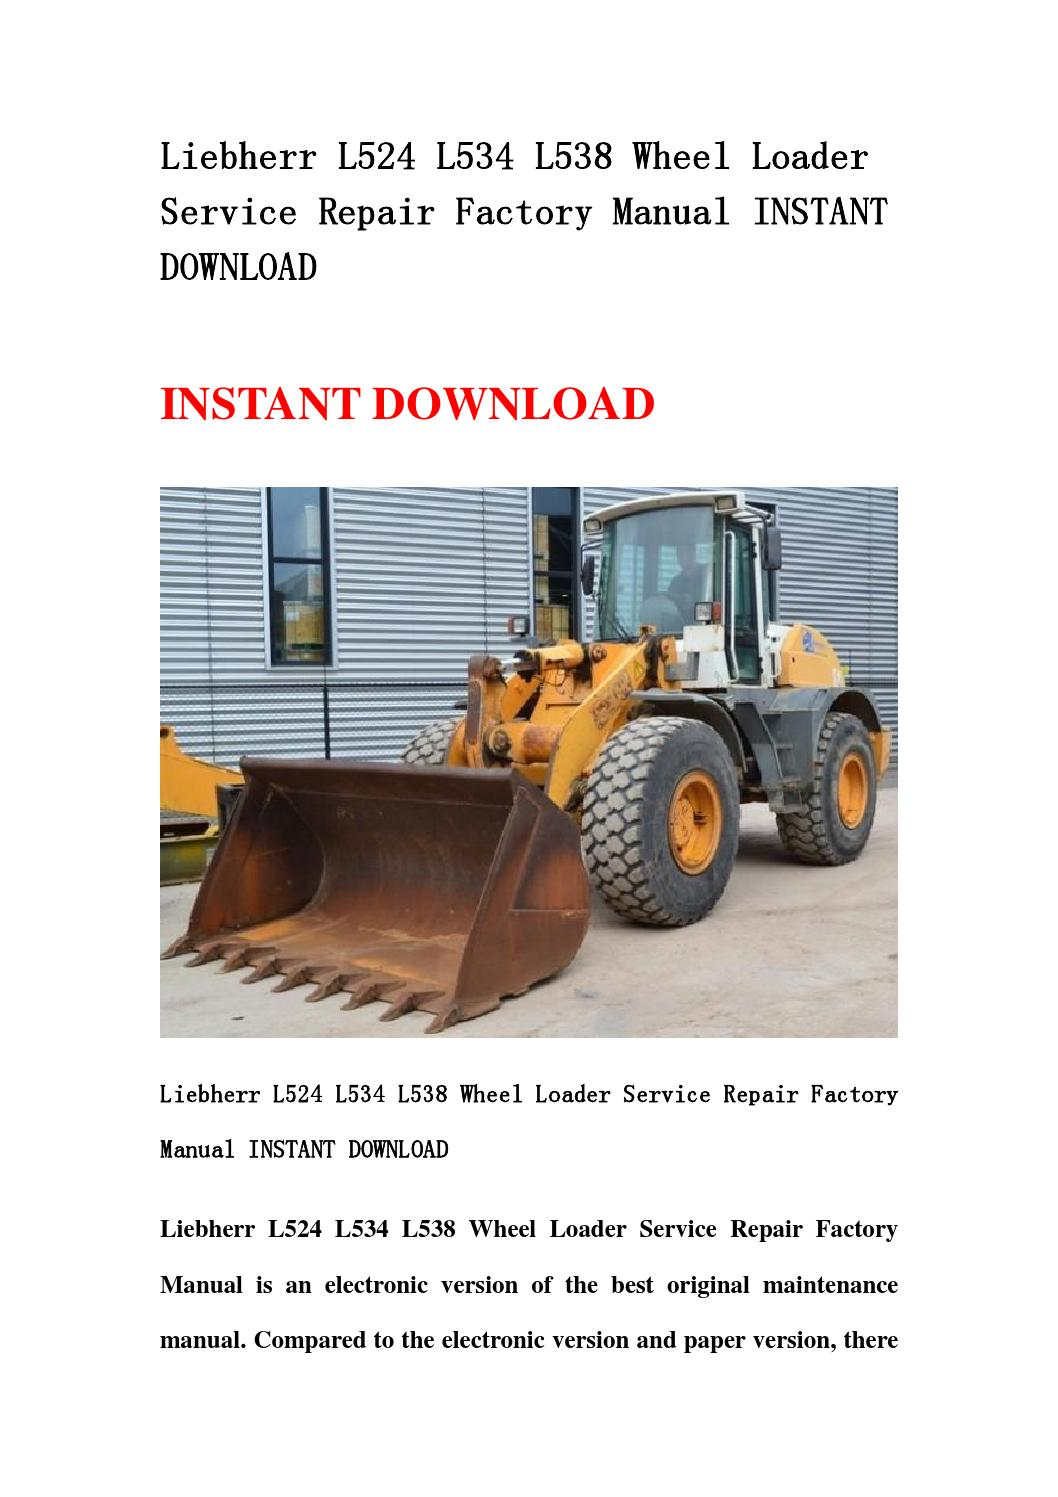 Liebherr L524 L534 L538 Wheel Loader Service Repair Factory Manual Key Switch Wiring Diagram Instant Download By Hdfgbsen Issuu